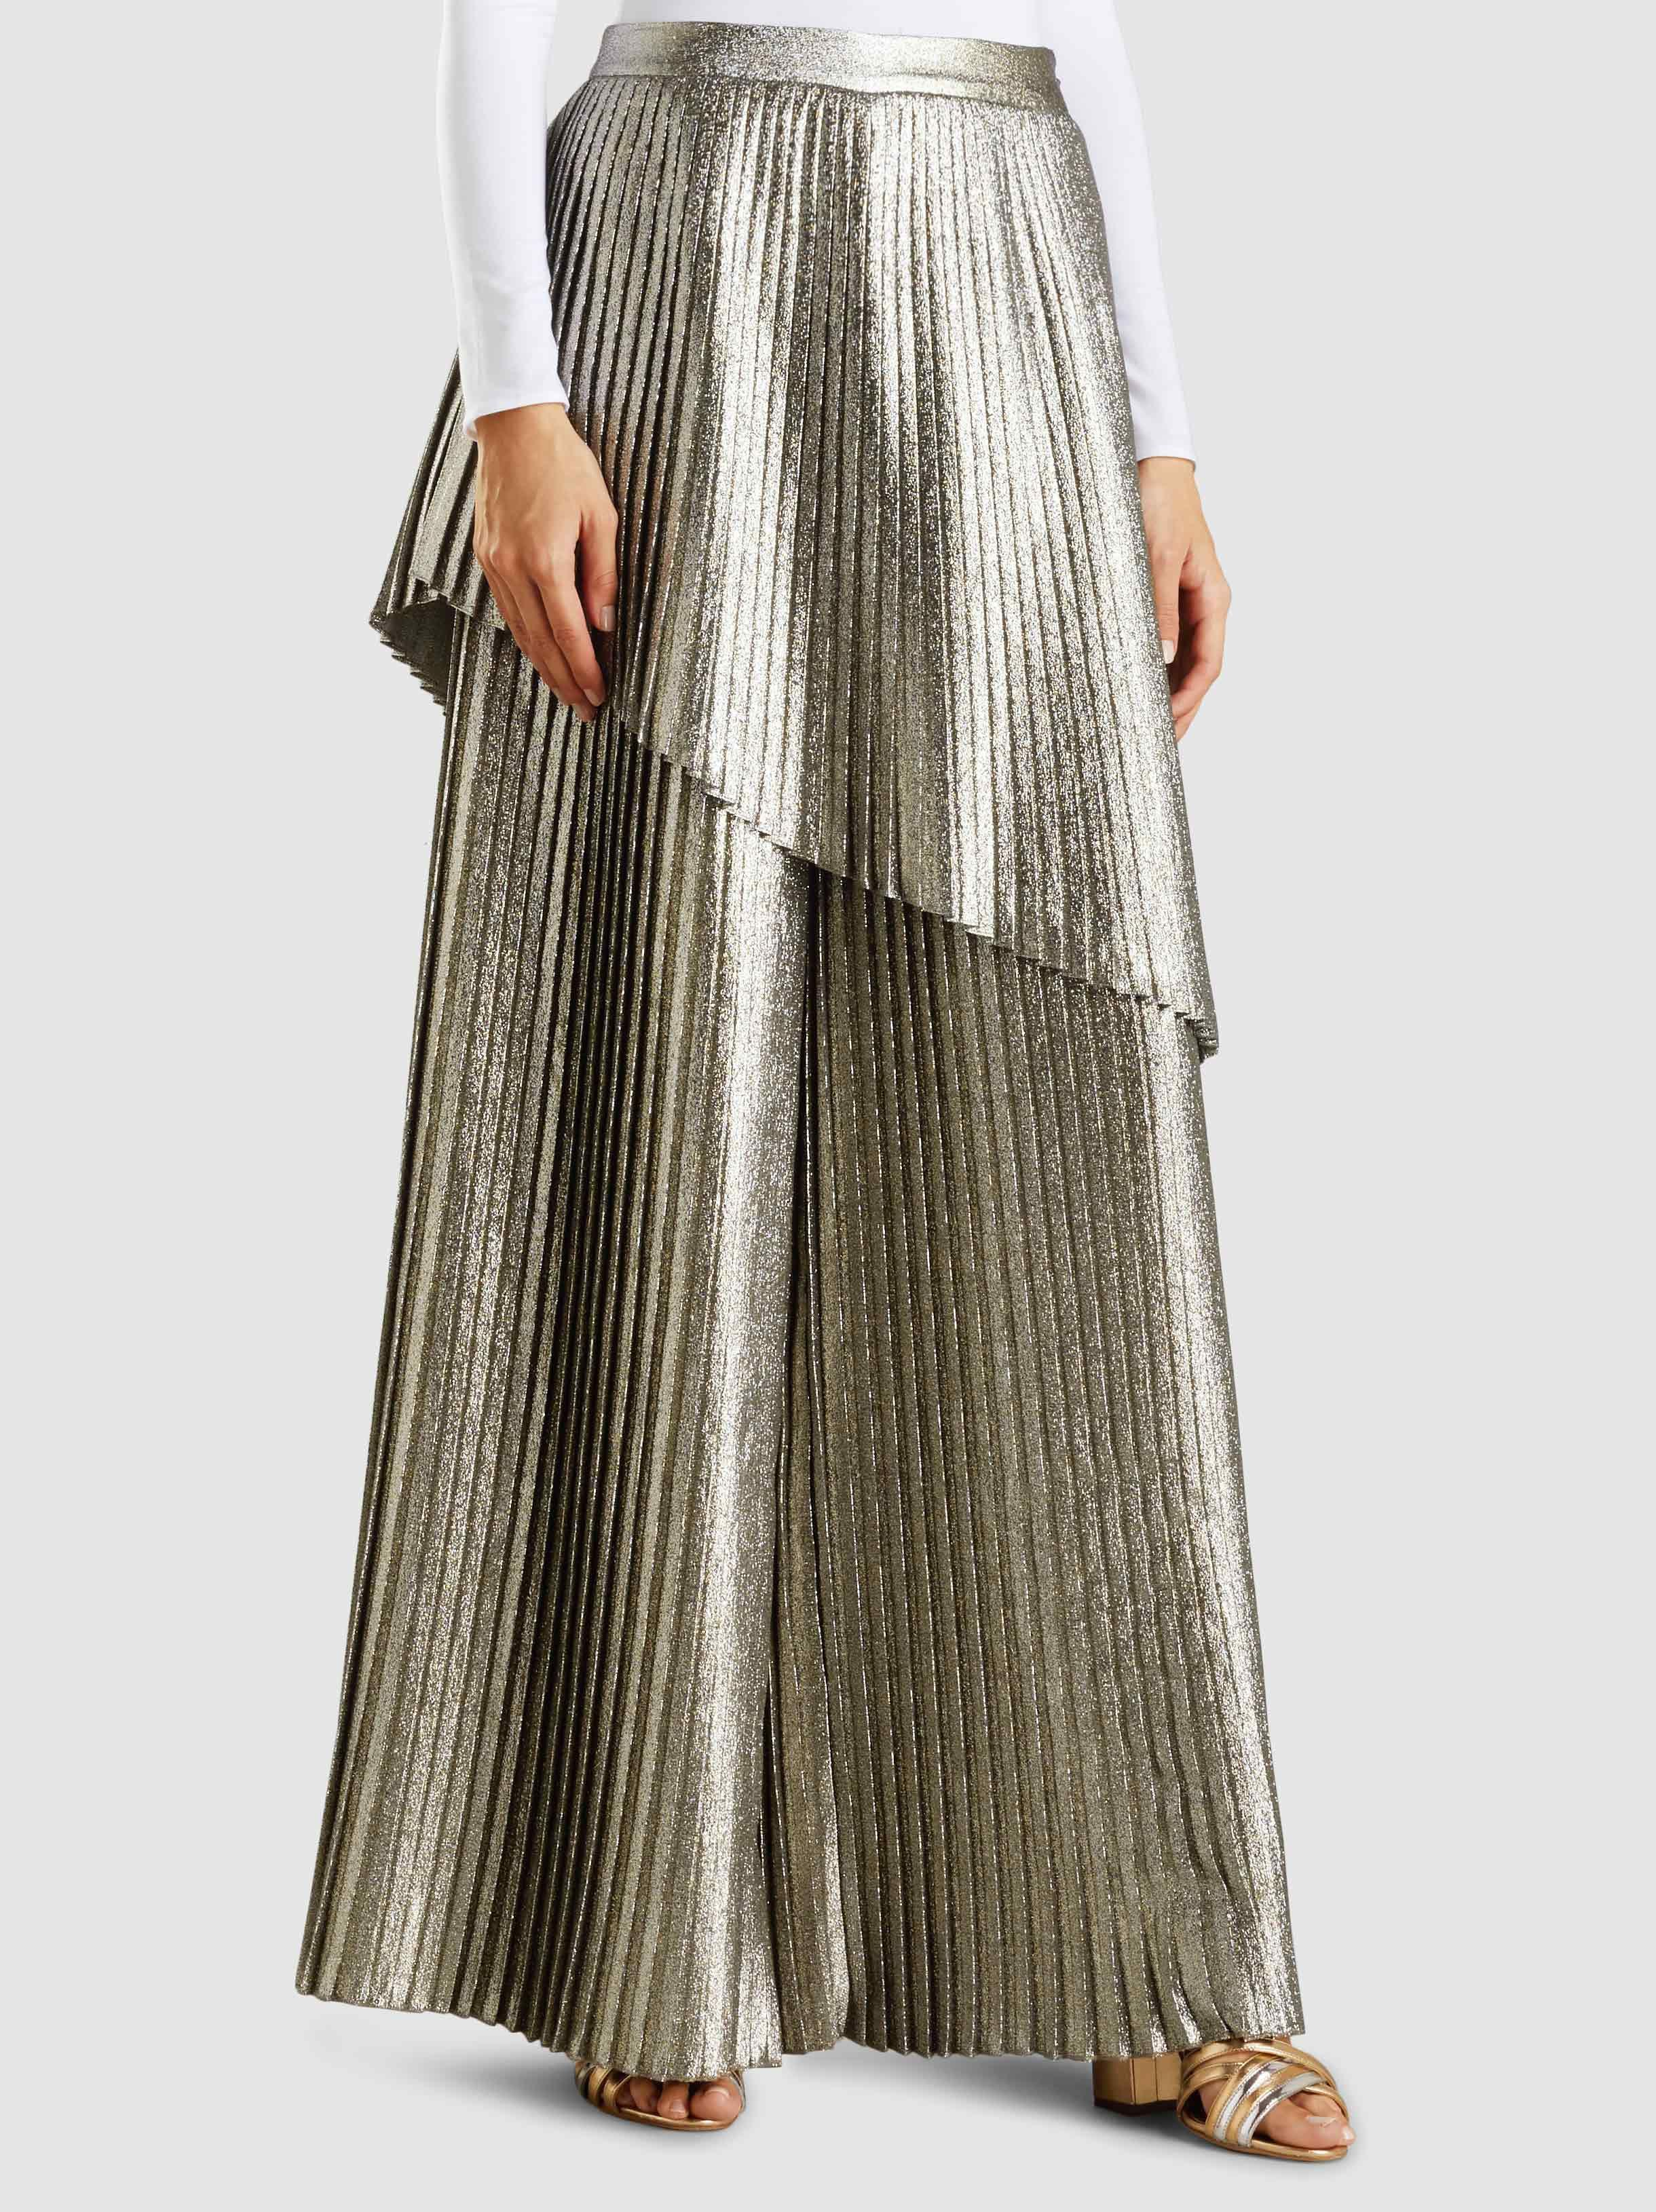 Outlet Store Cheap Online Metallic Pleated Wide-Leg Trousers SemSem Buy Cheap New Styles Discount Comfortable Classic mnD2oAo7I